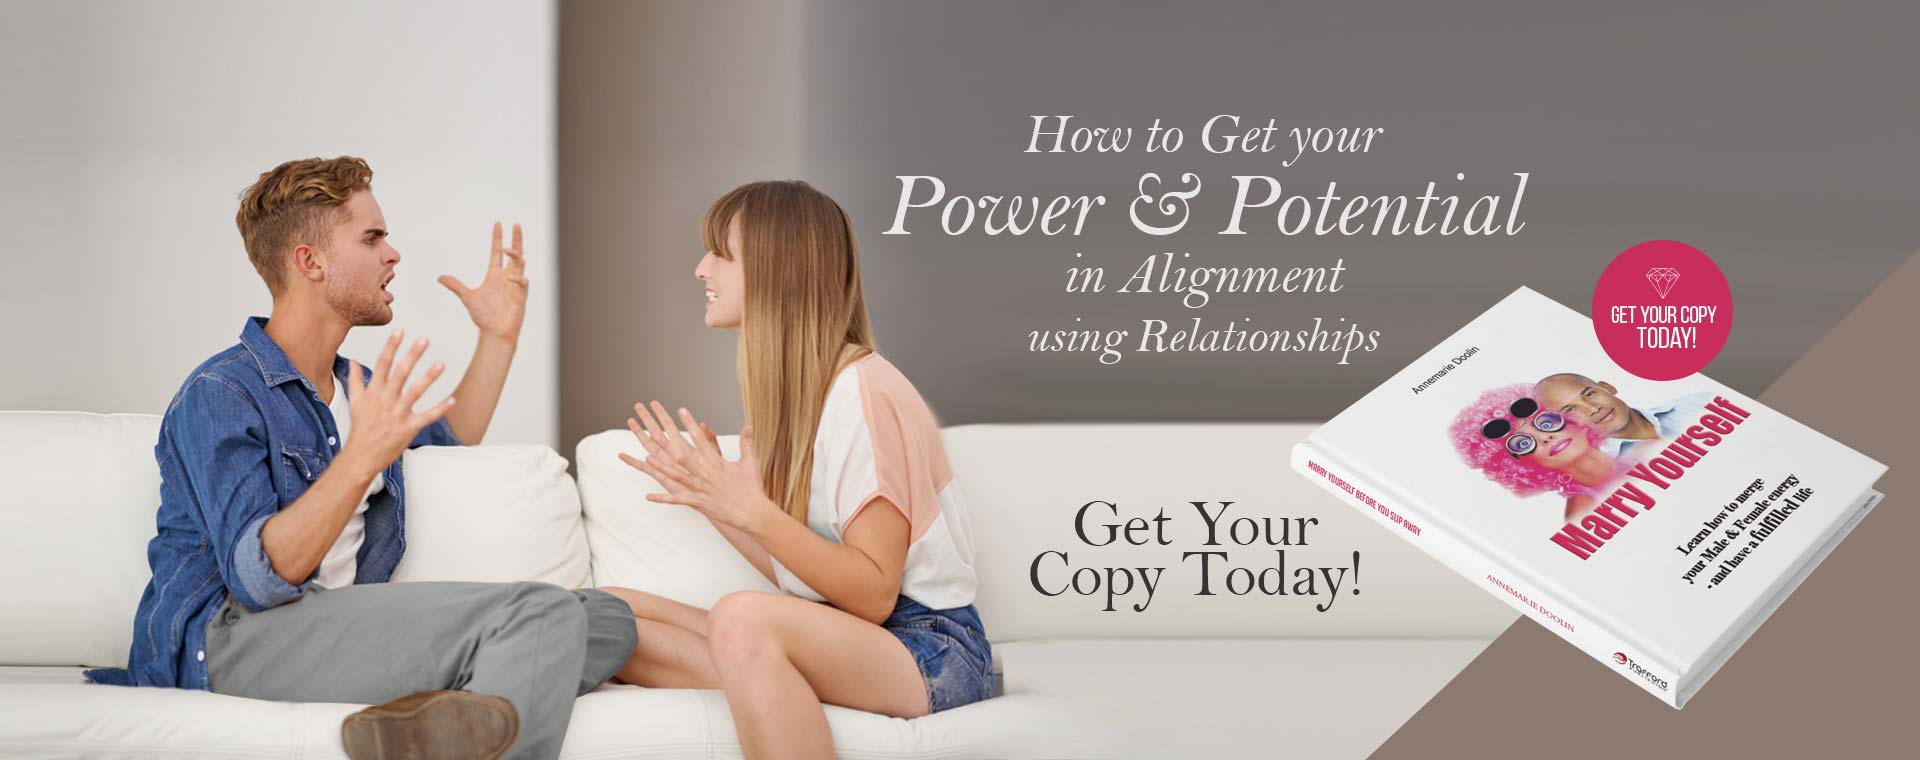 How to get your power and potential to align through relationships